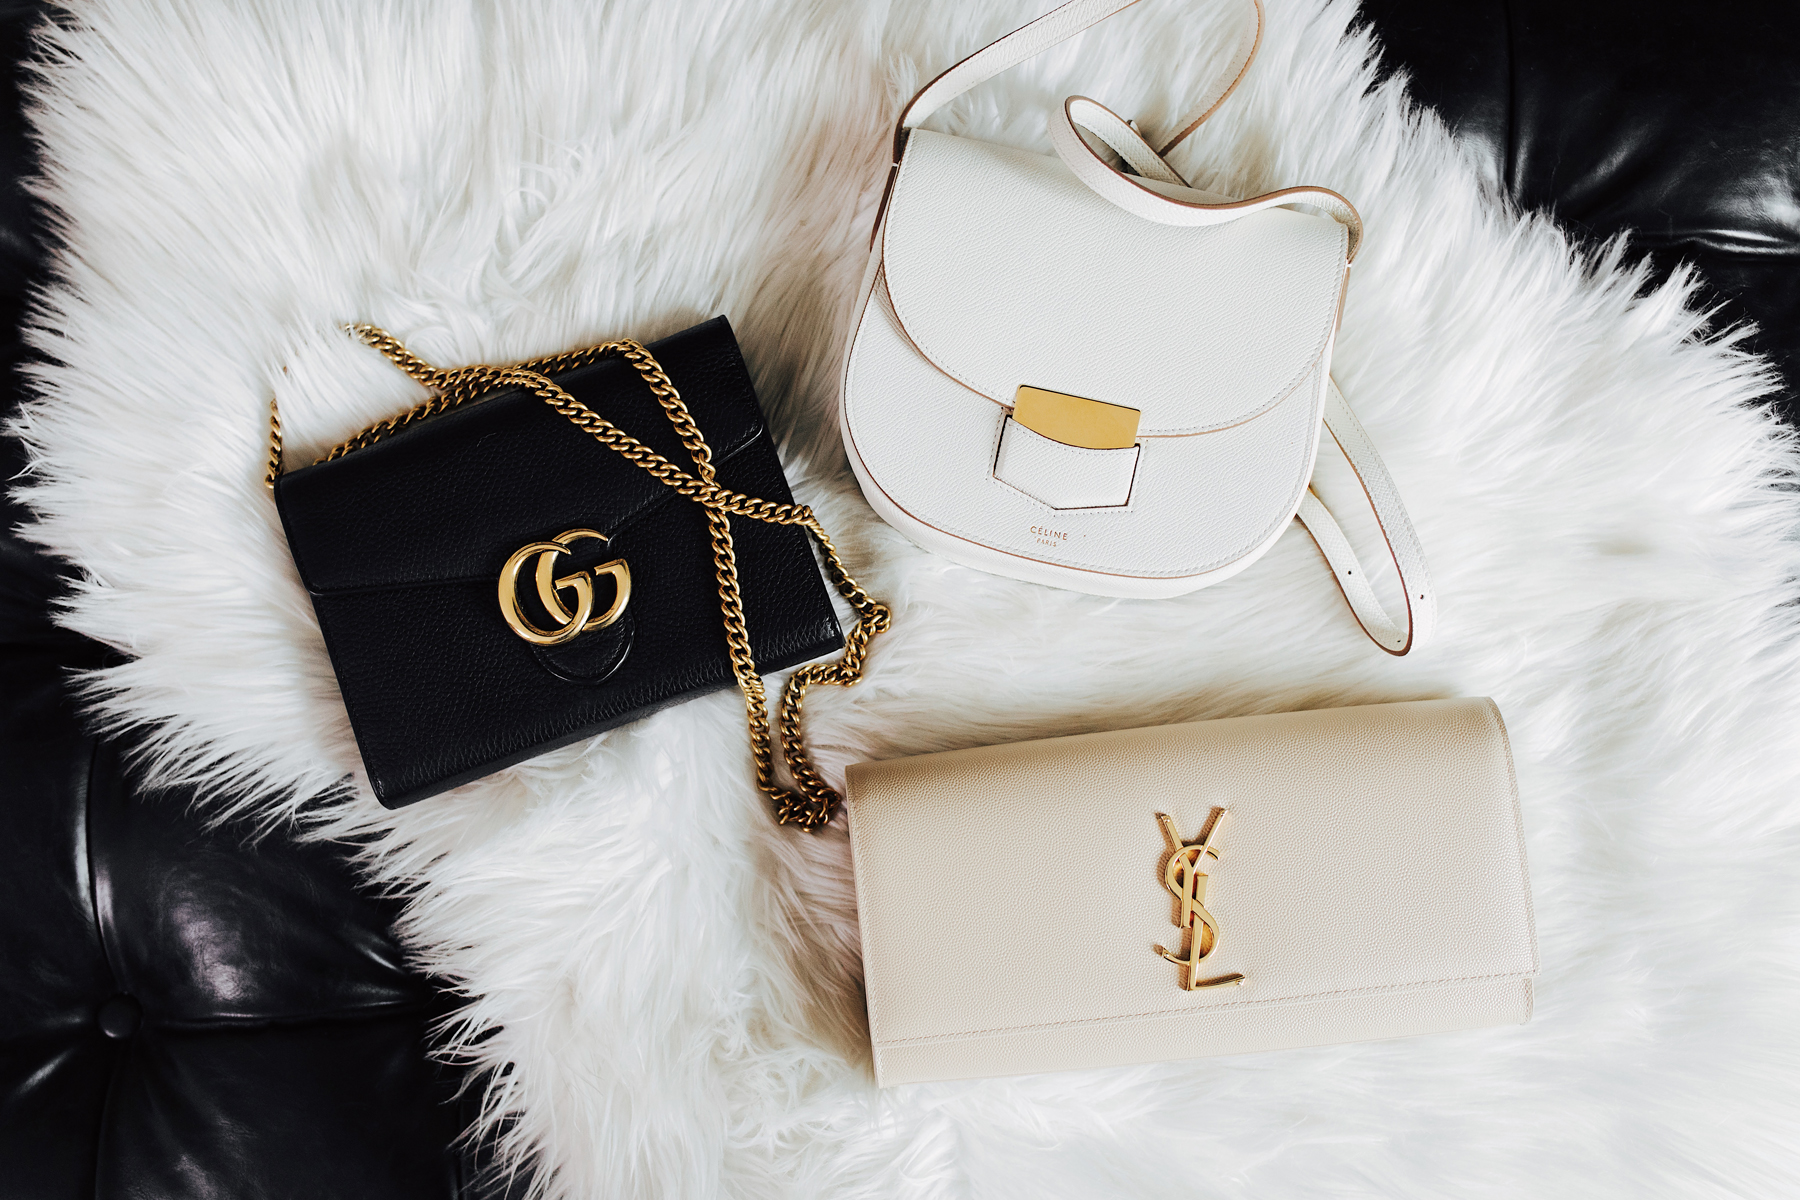 Fashion Jackson Designer Handbag Collection Gucci Marmont Black Wallet on a Chain Celine Trotteur White YSL Monogram Nude Clutch